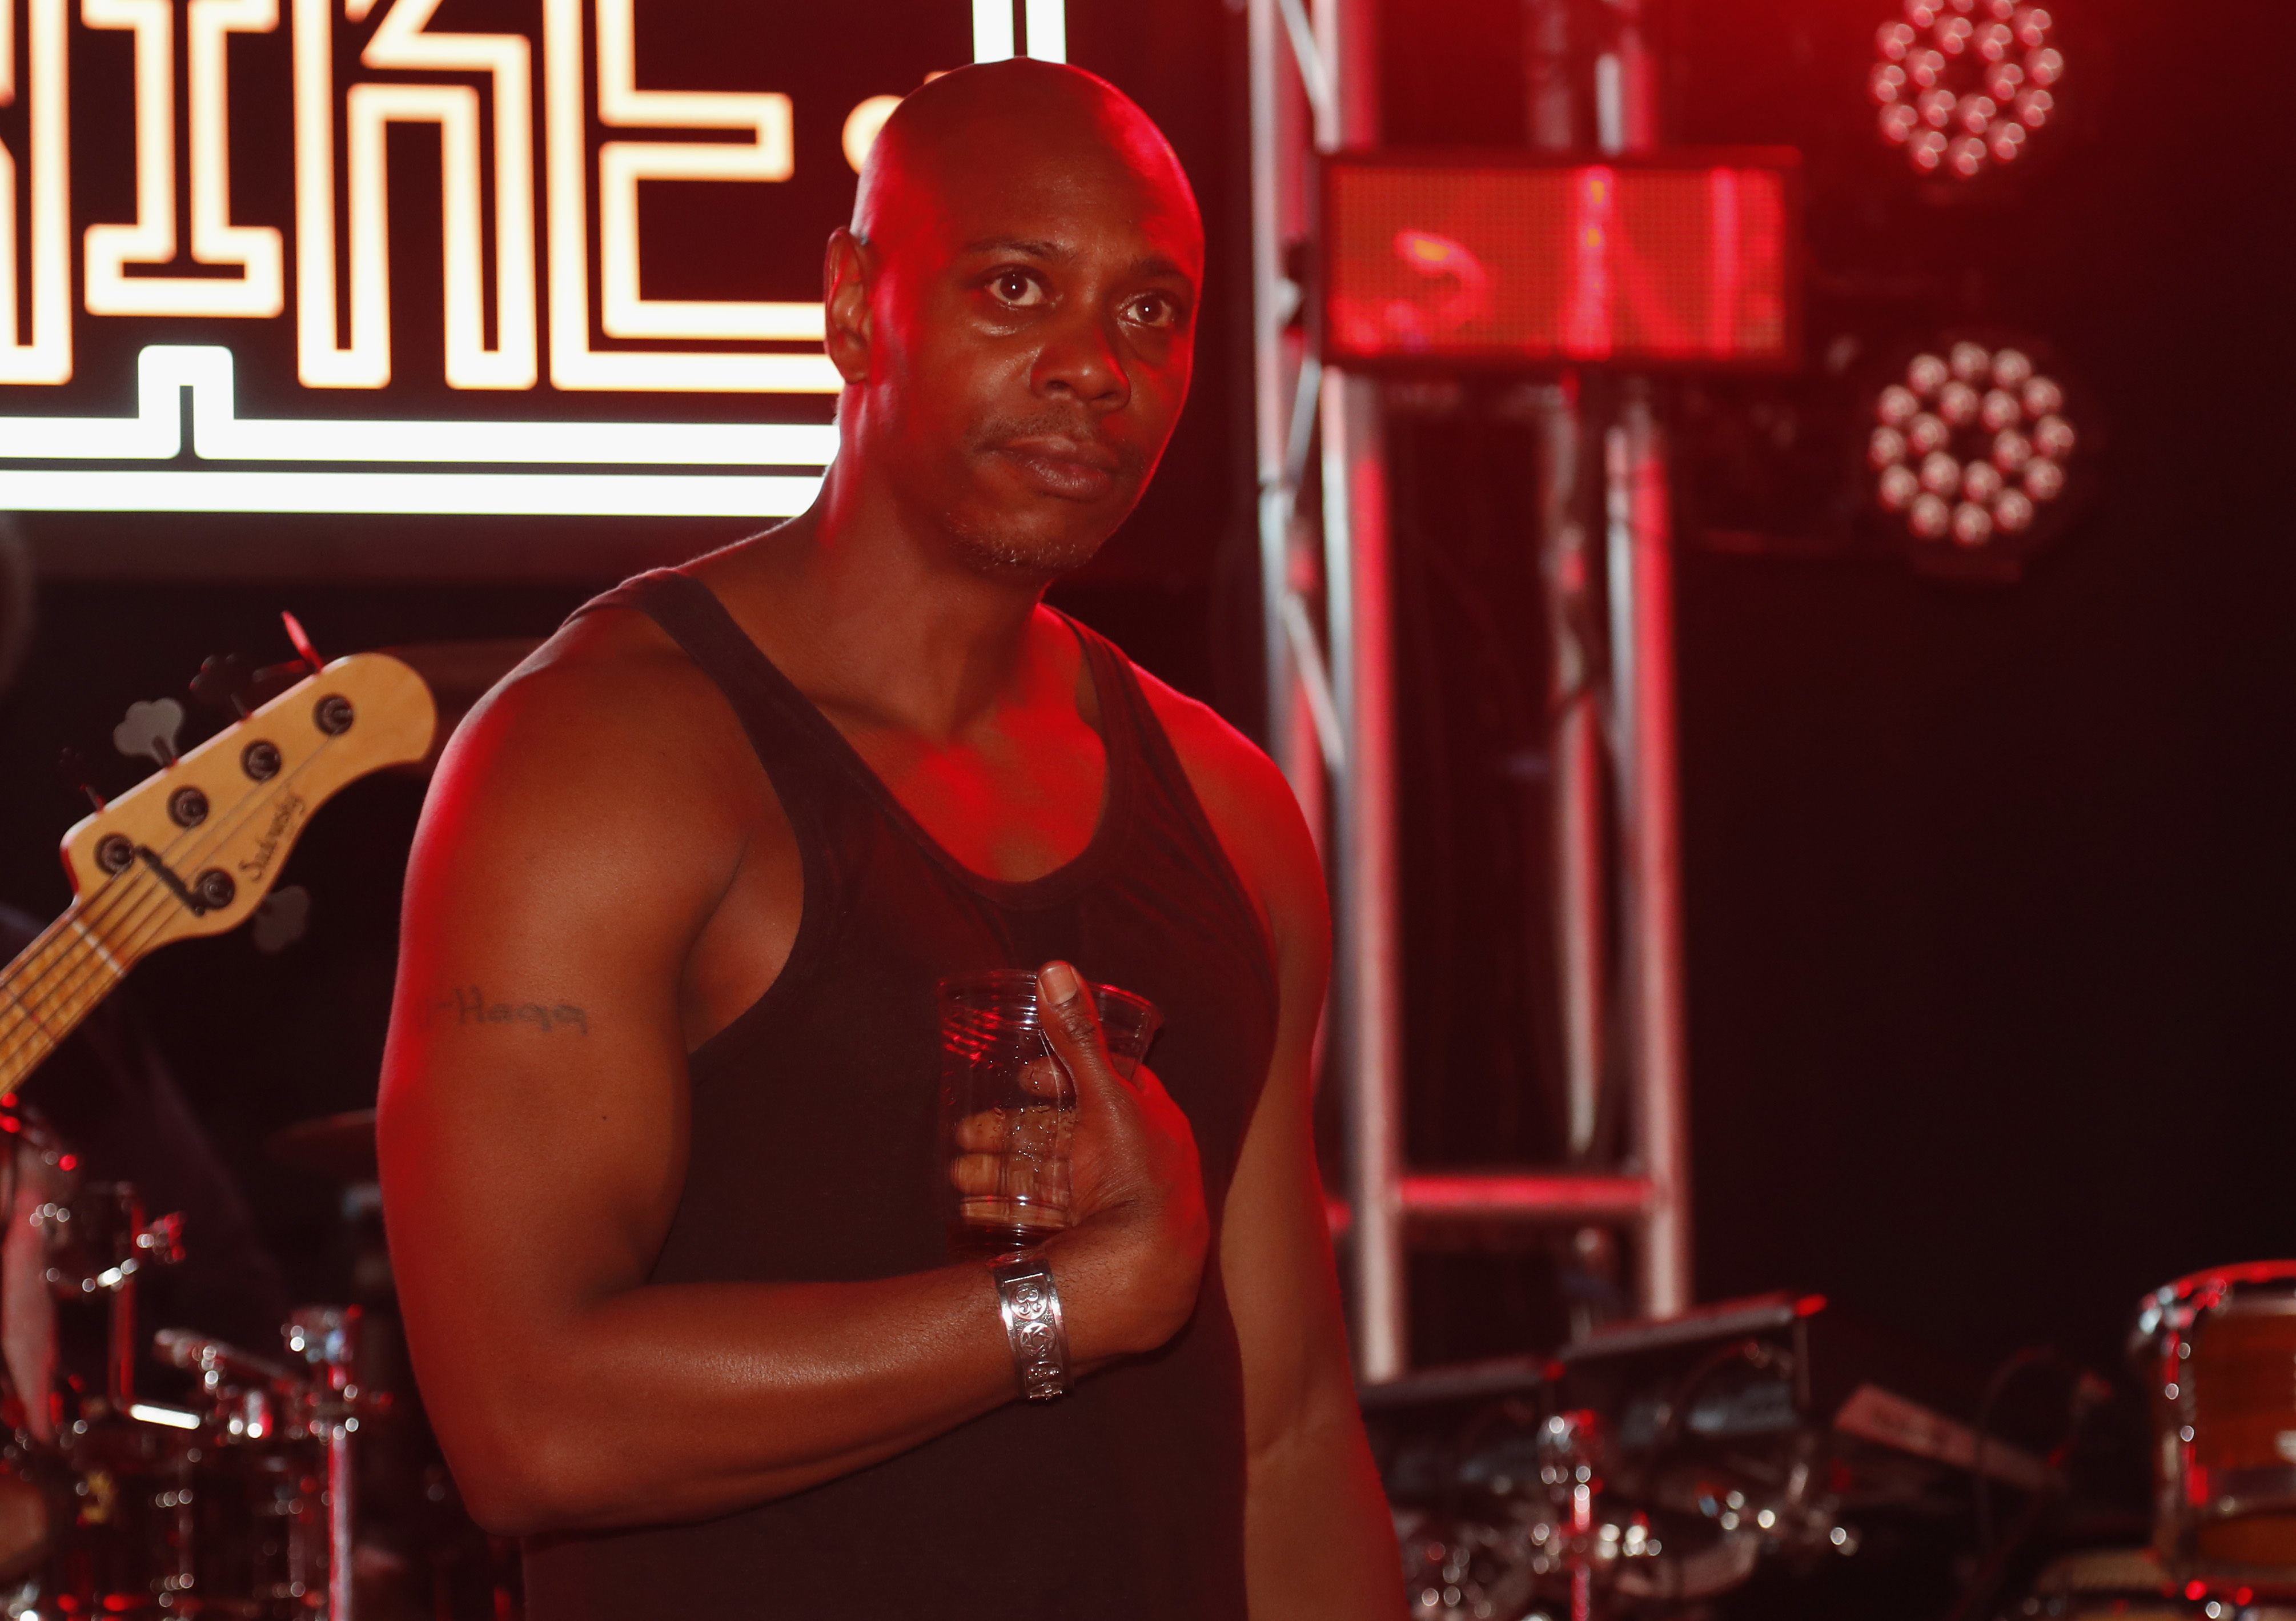 Comedian Dave Chappelle was recently blasted by critics for making gay jokes in his latest Netflix comedy special.